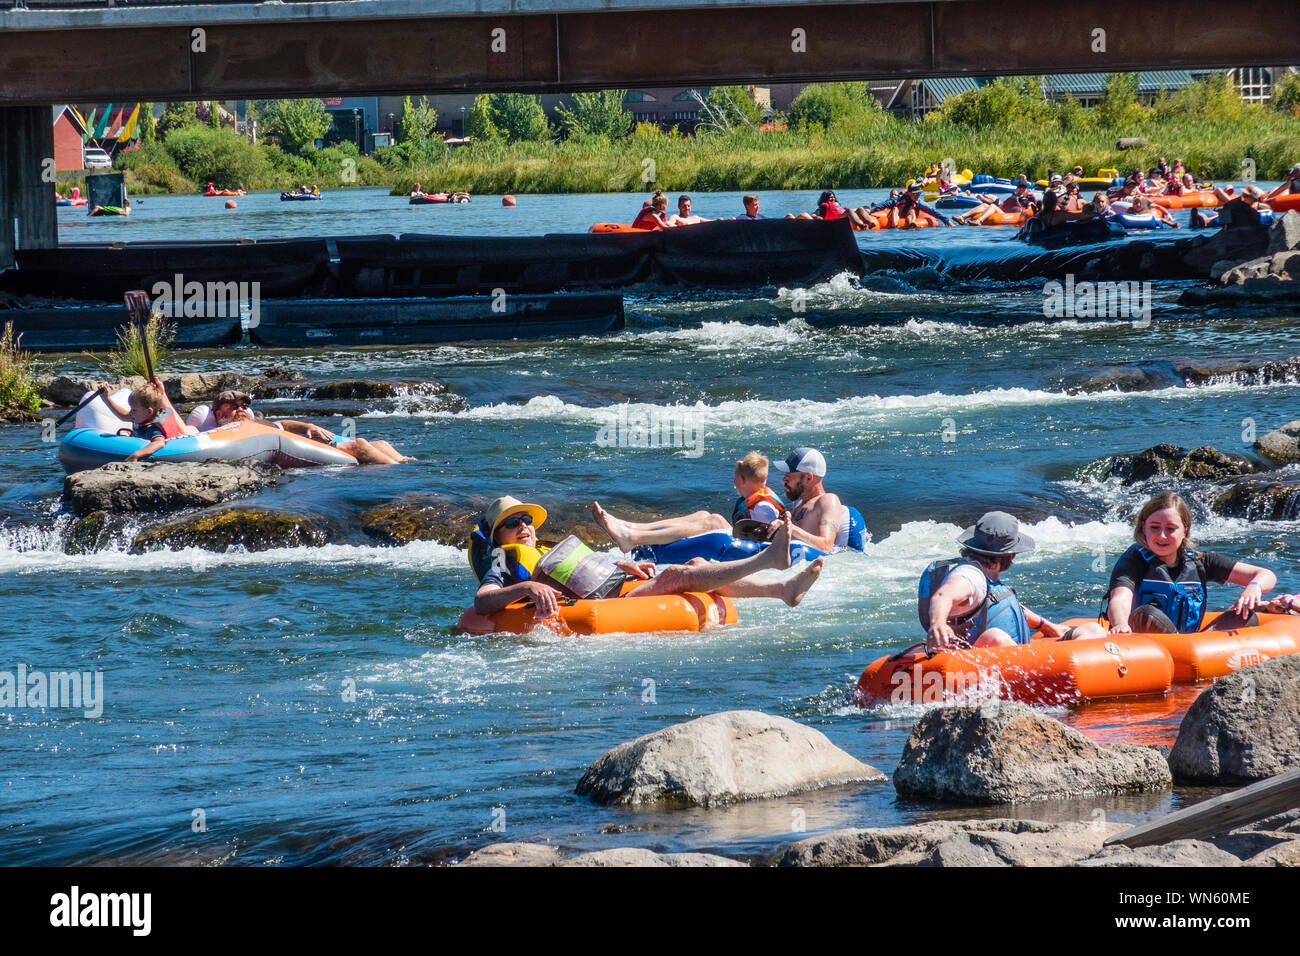 Tubing In The Deschutes River In Bend Oregon Stock Photo